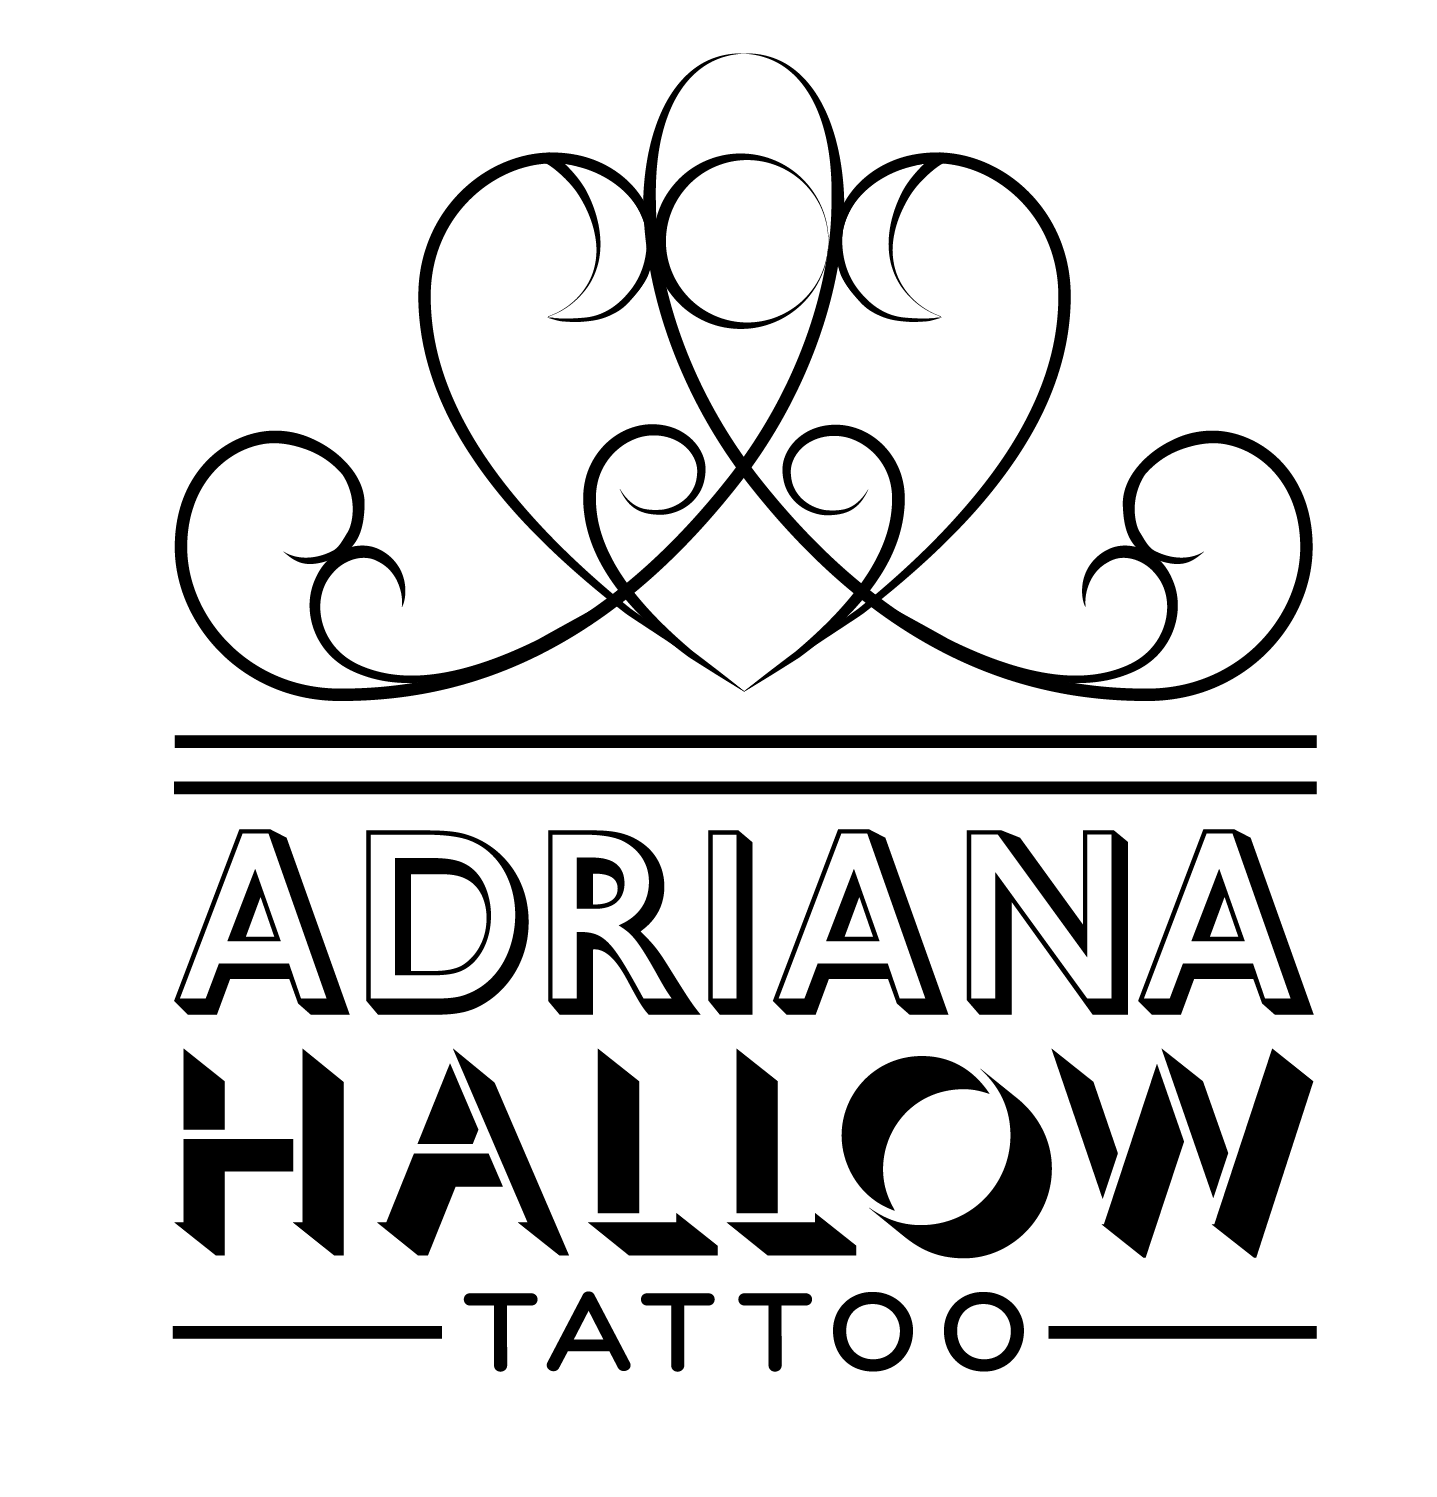 ADRIANA HALLOW TATTOO